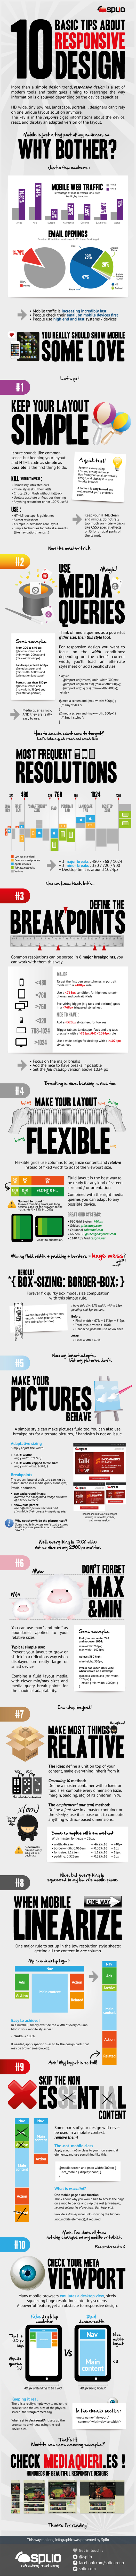 10_basic_tips_about_responsive_design